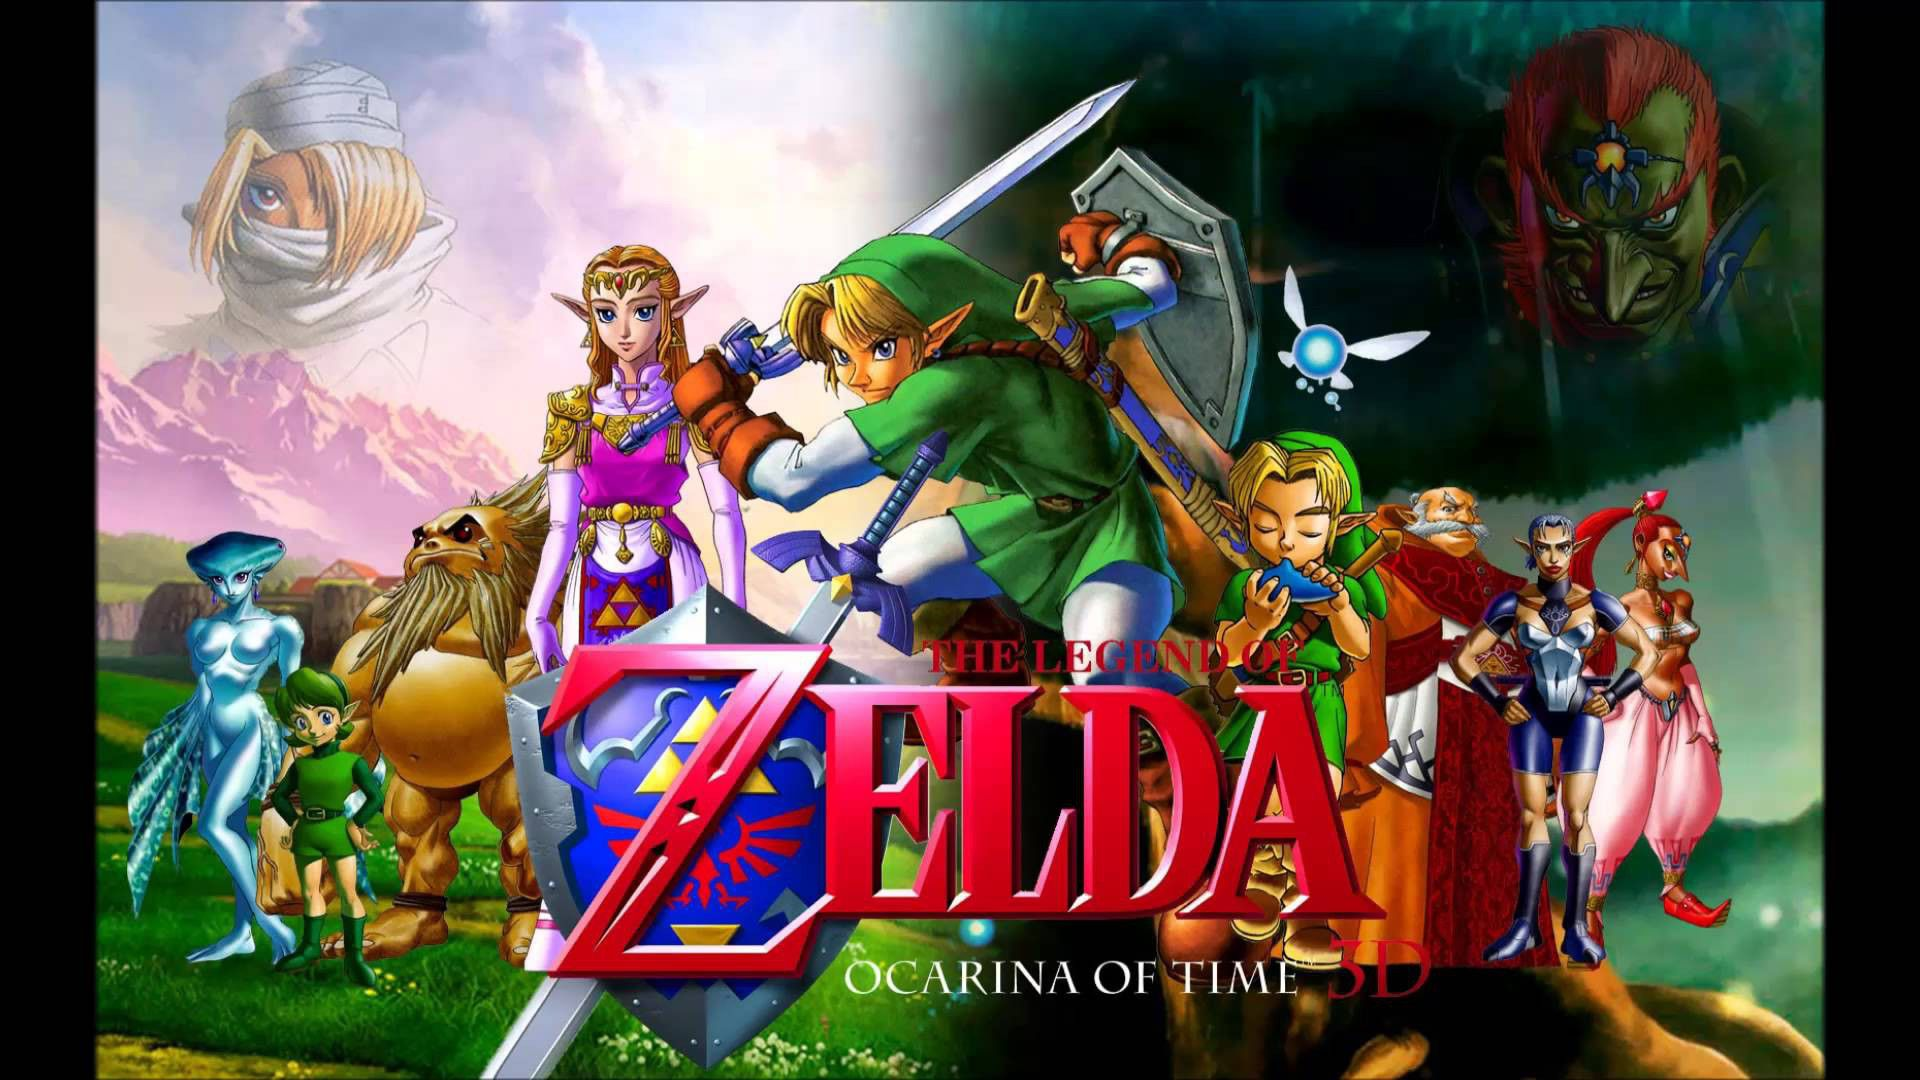 Free Download Zelda Ocarina Of Time Wallpaper Hd Desktop